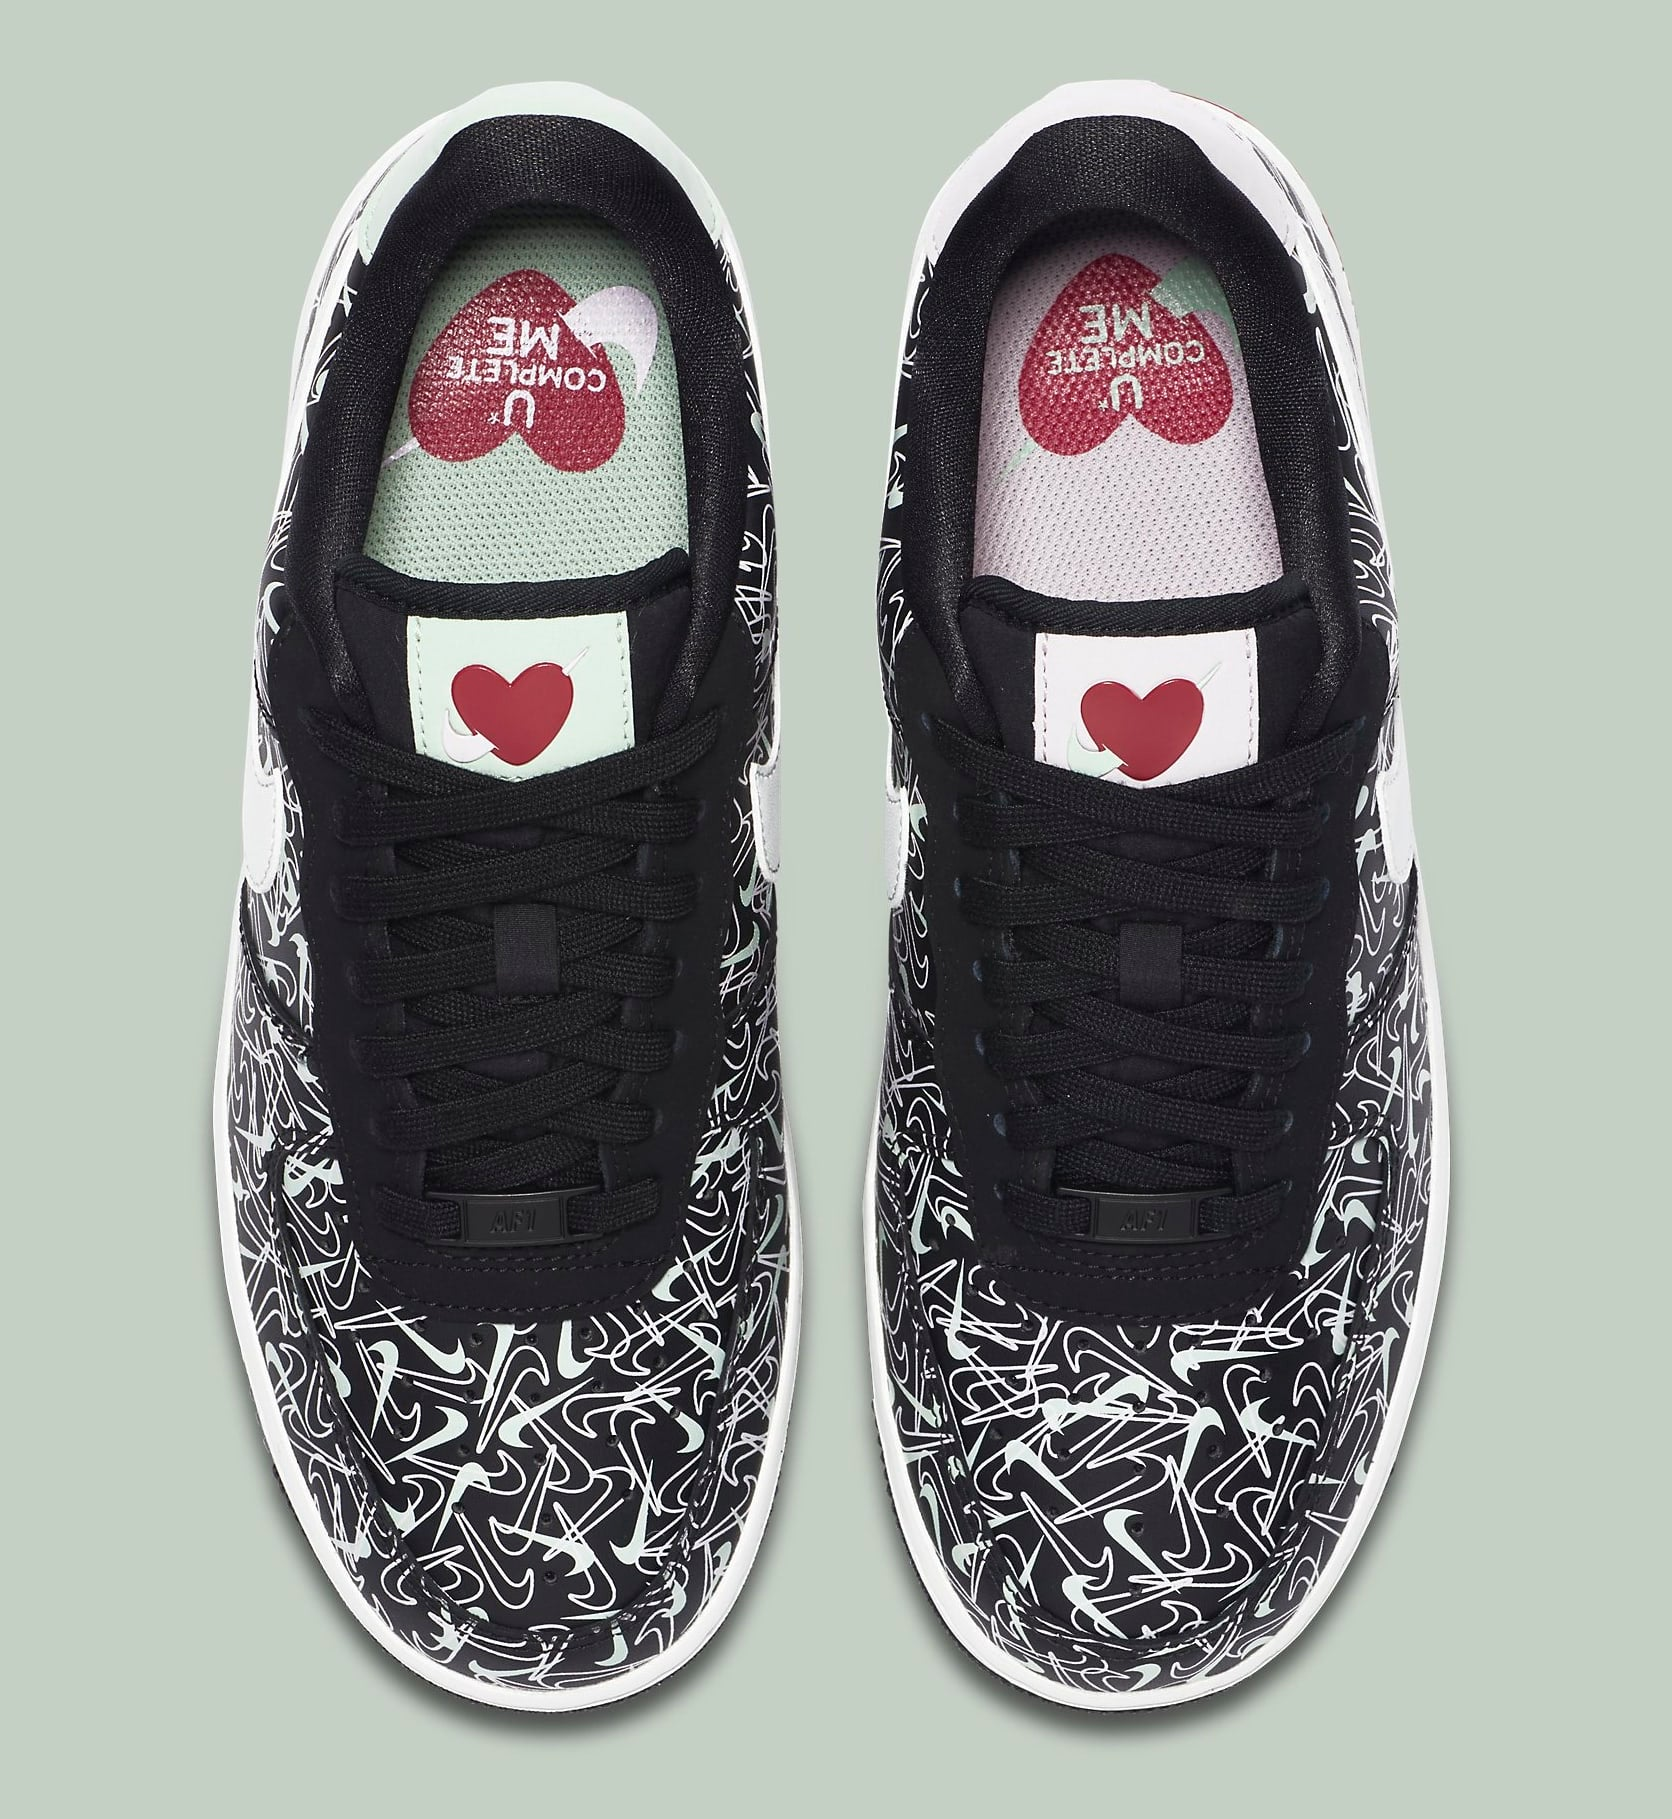 A Little Sneaker Love: Just in Time for Valentine's Day